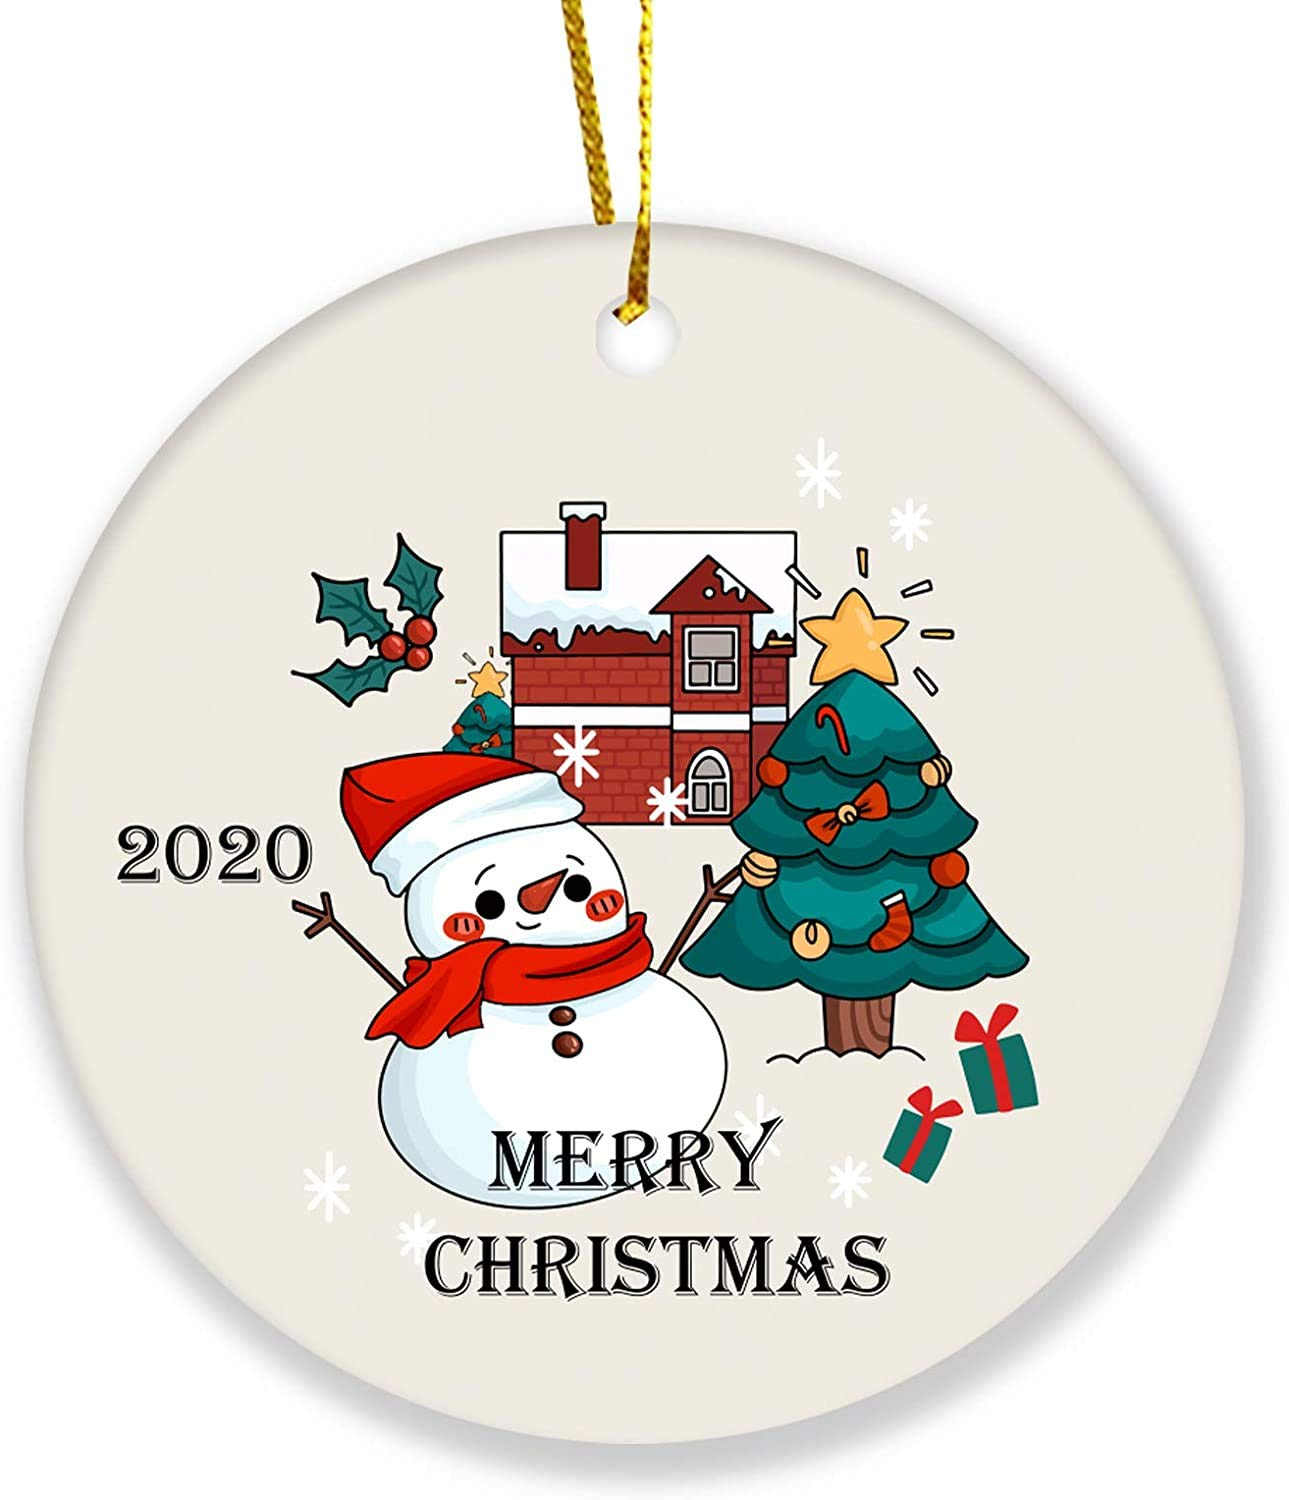 2020 Christmas Tree Ornament Merry Christmas Snowman Personalized Gifts